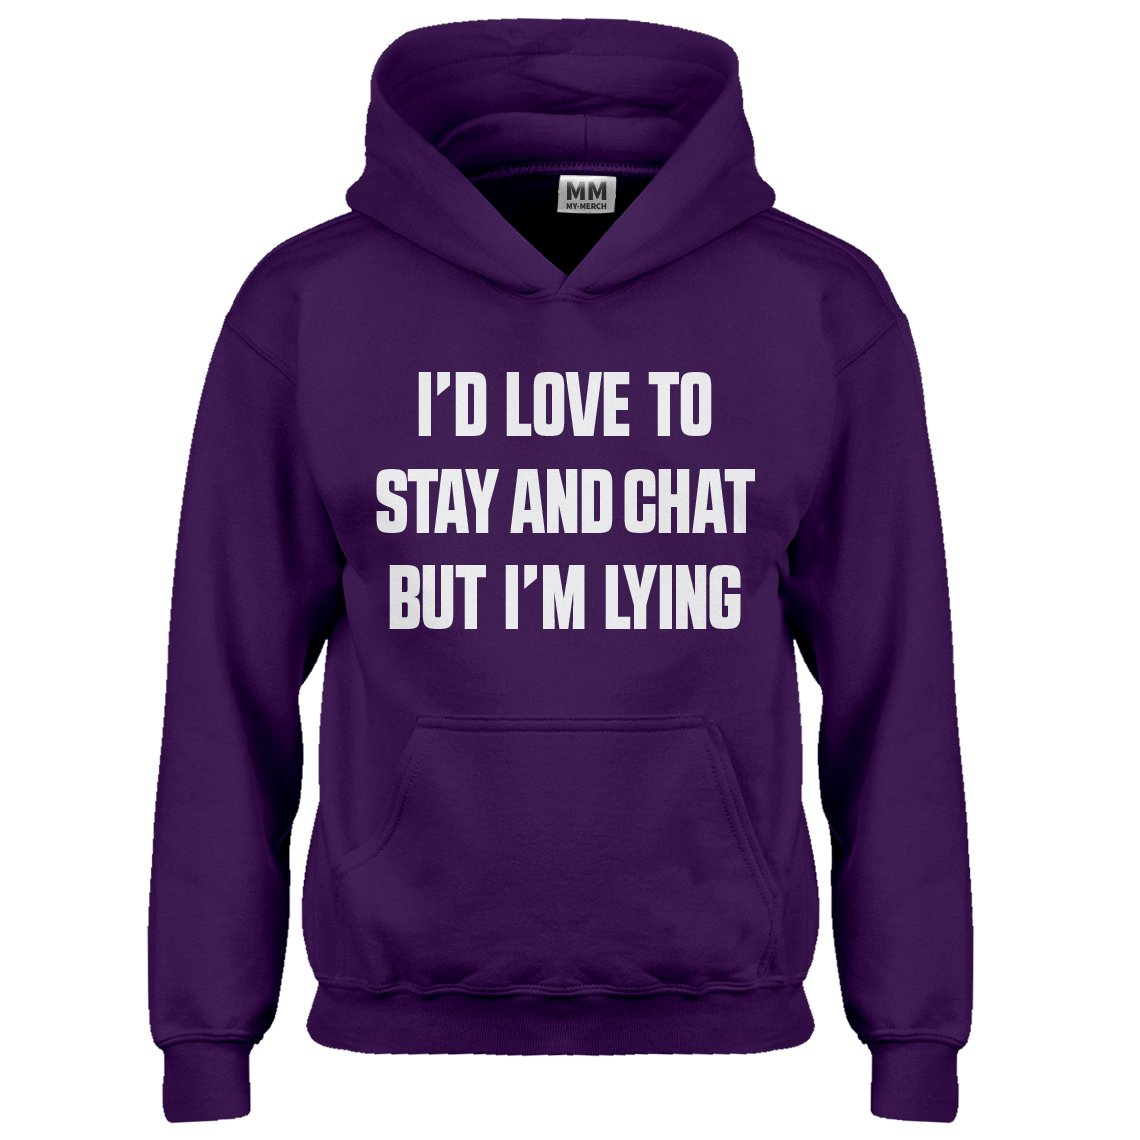 Indica Plateau Youth Id Love to Stay and Chat but Im Lying Kids Hoodie